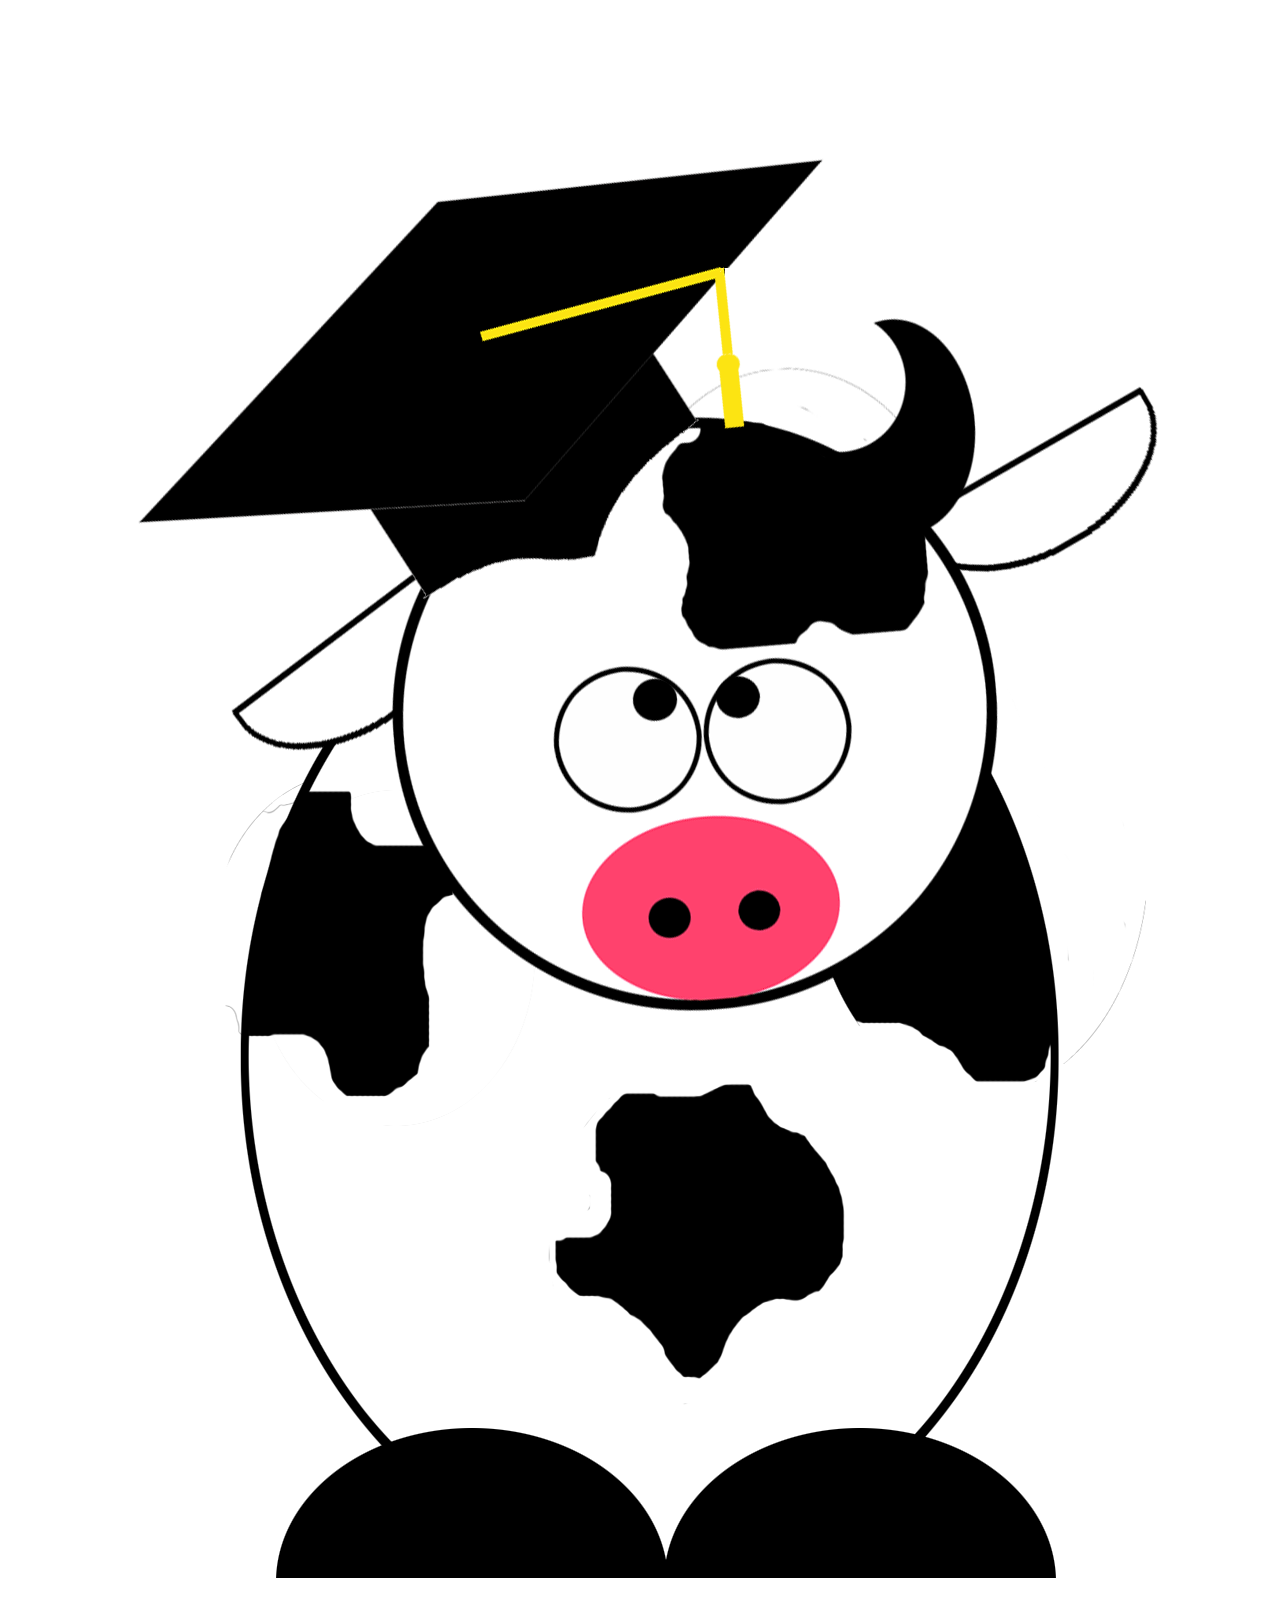 Cows clipart space. Optimizing yield a fable